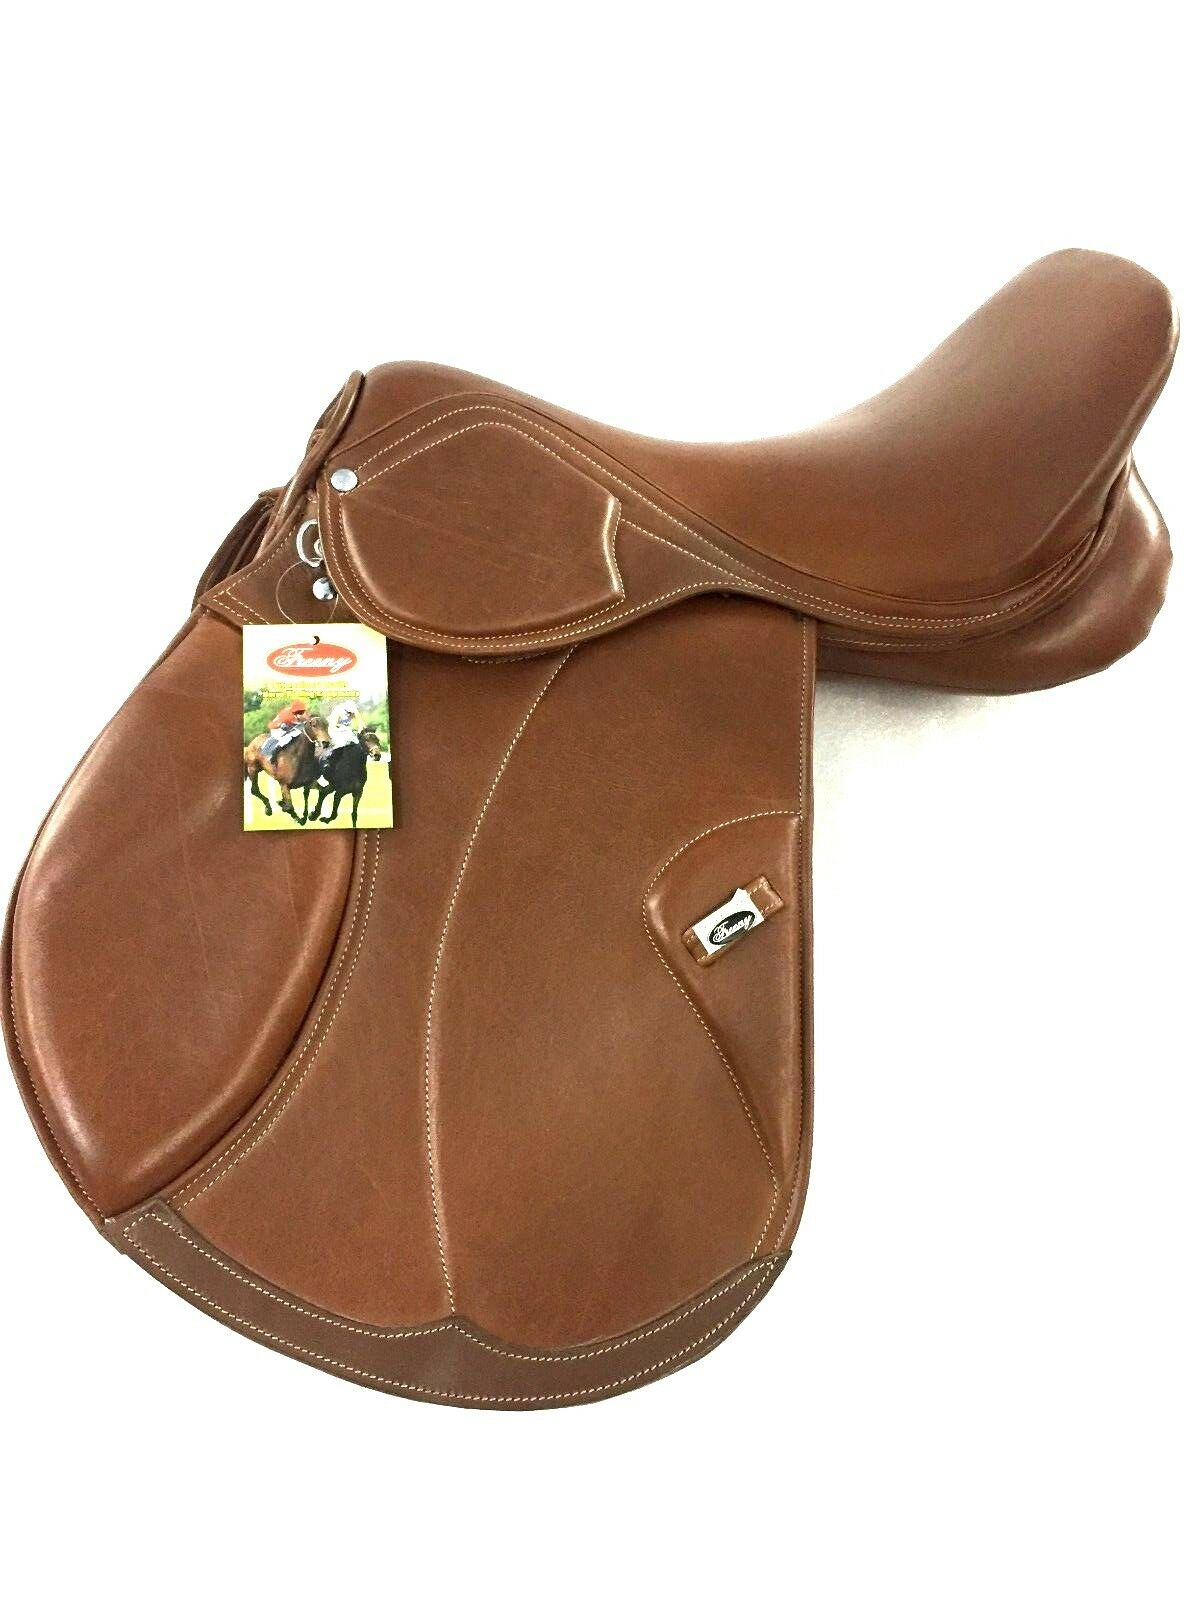 New Softy Padded Leather English   All Purpose Branded Saddle  the most fashionable